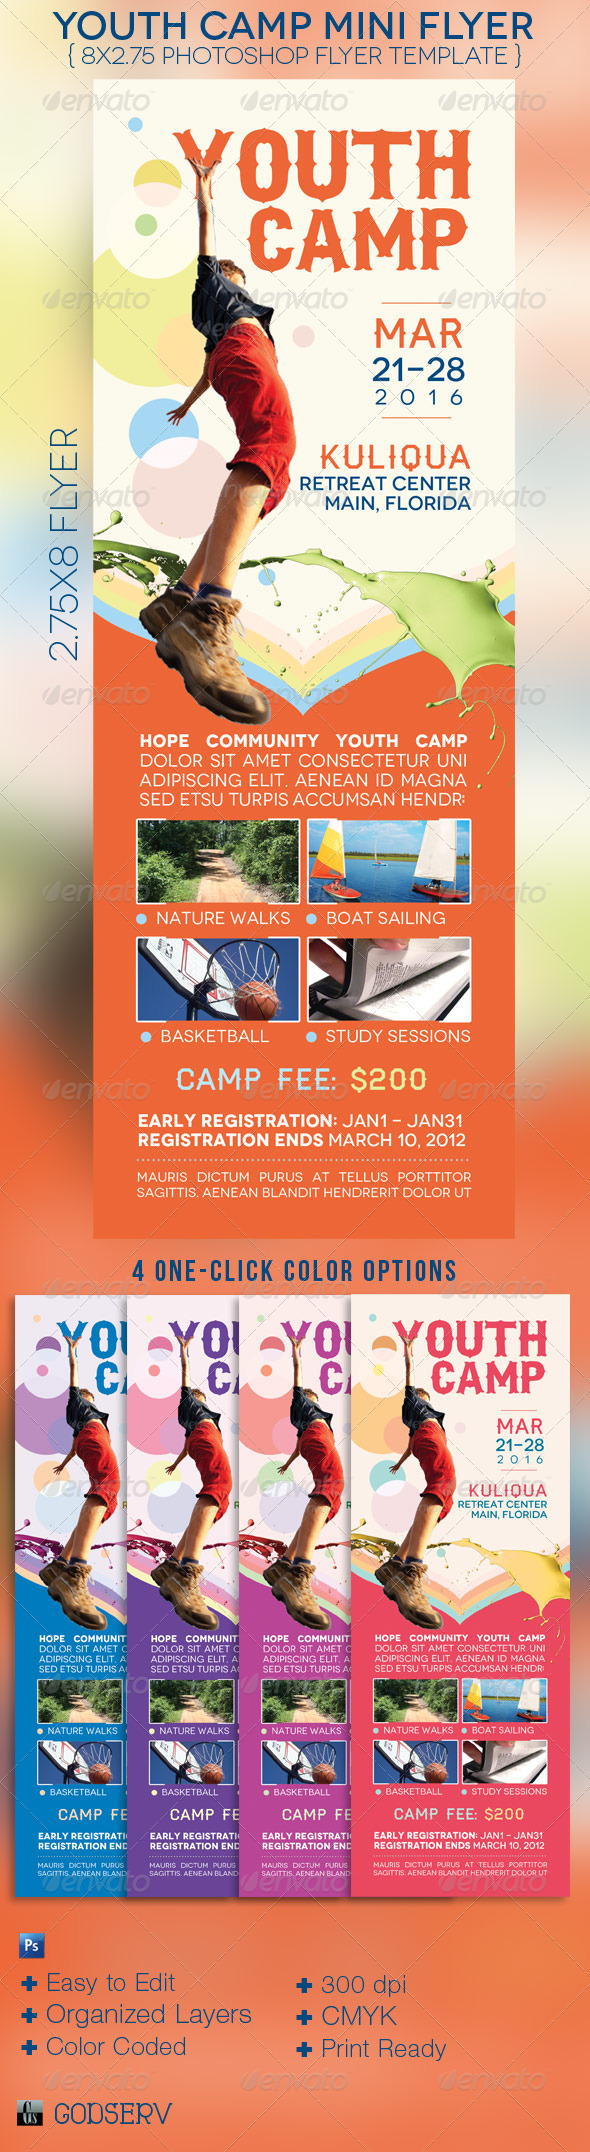 Youth Camp Mini Flyer Template - Church Flyers